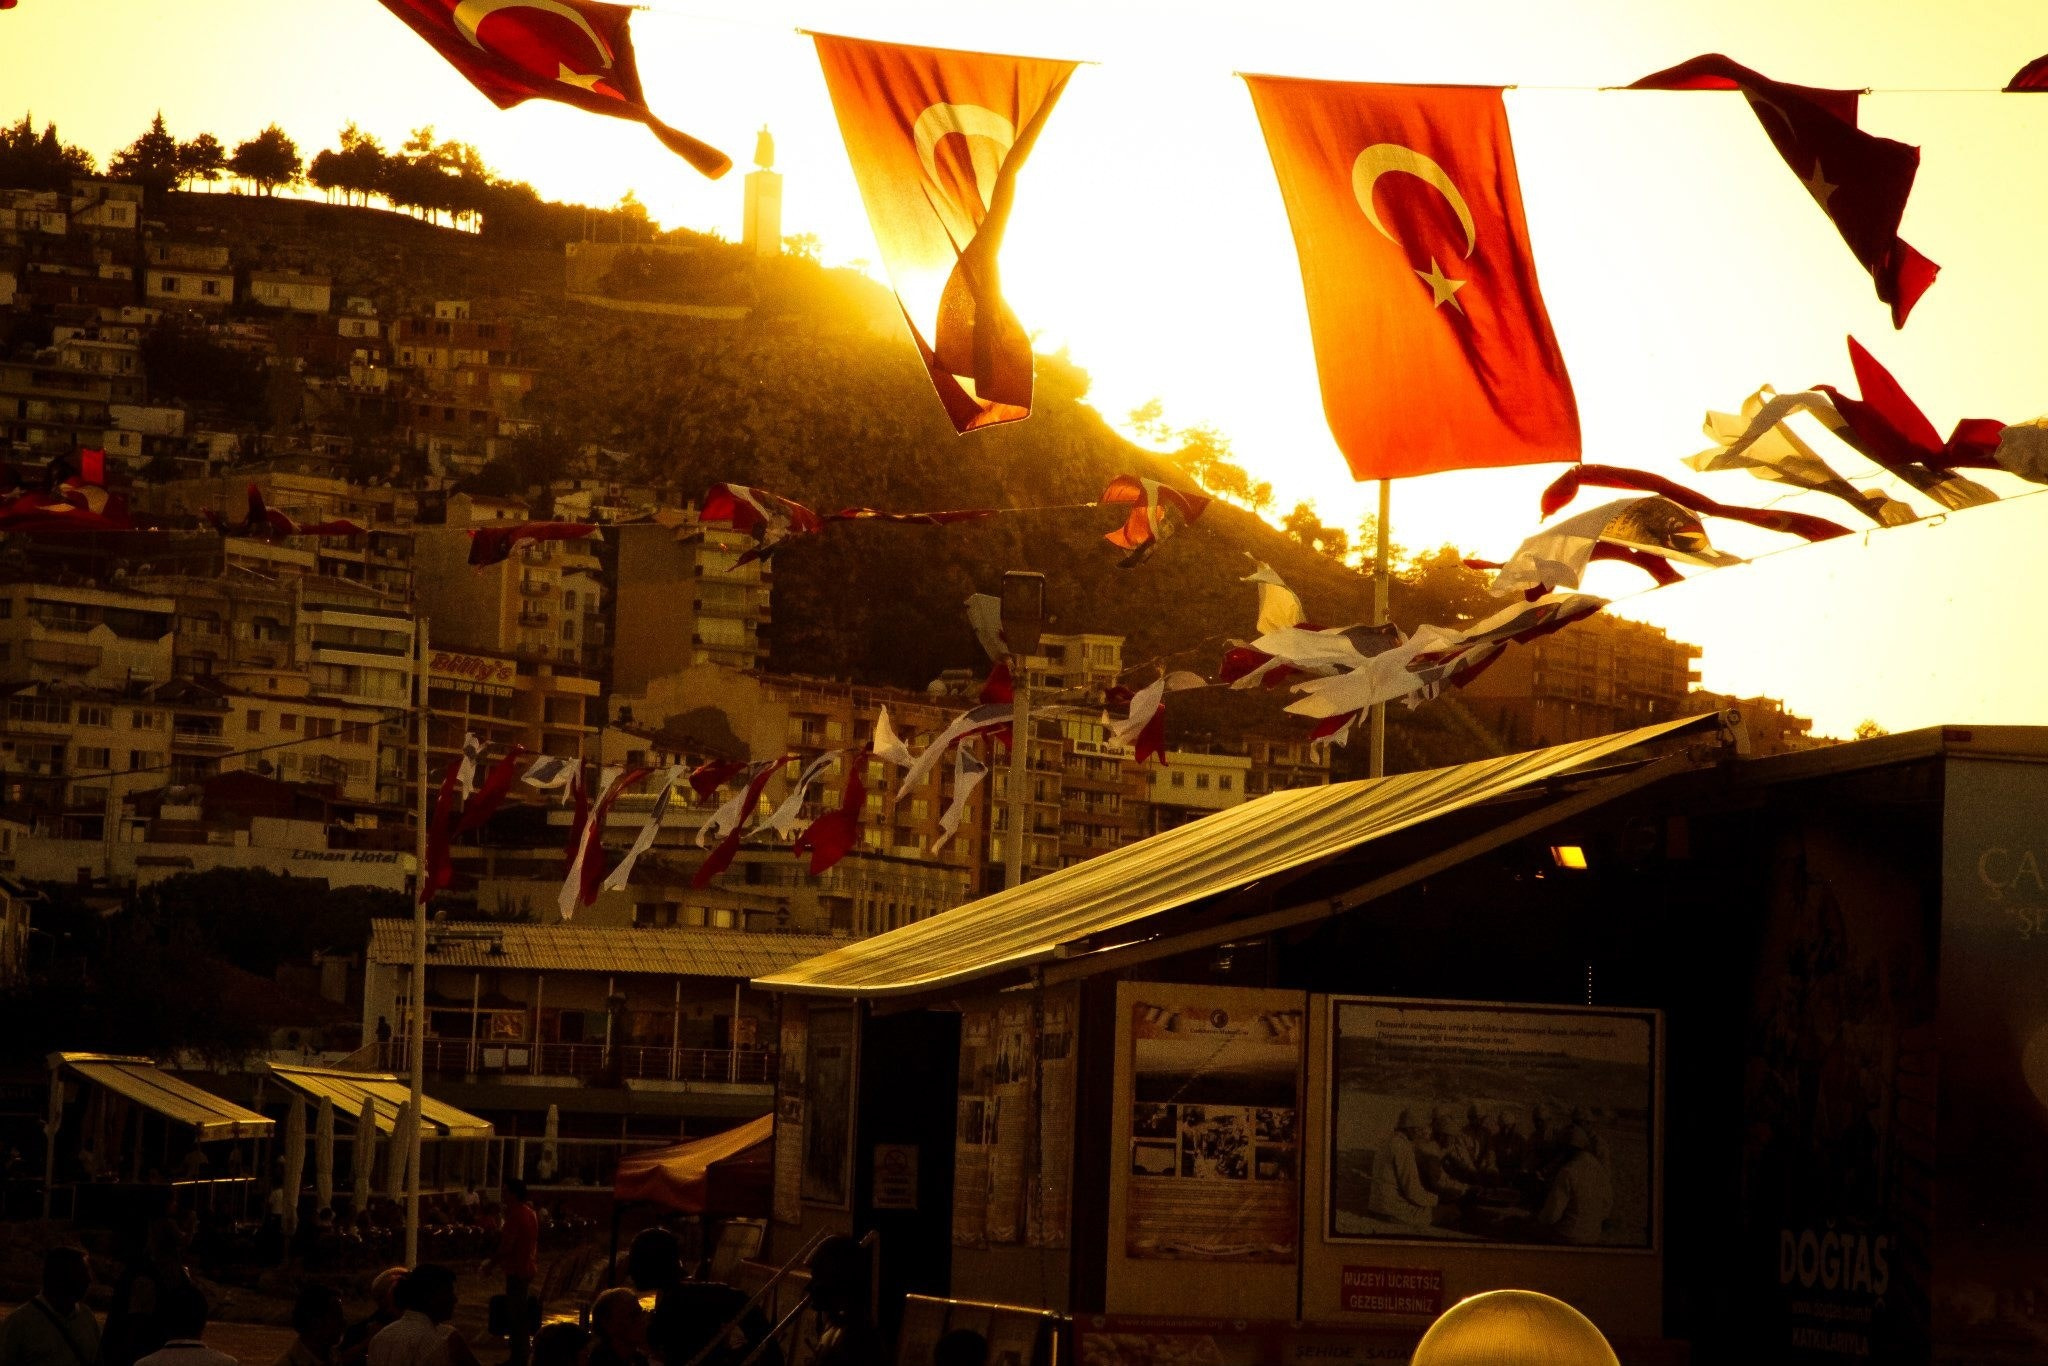 Photograph Turkish Flags by Sheldon Steere on 500px